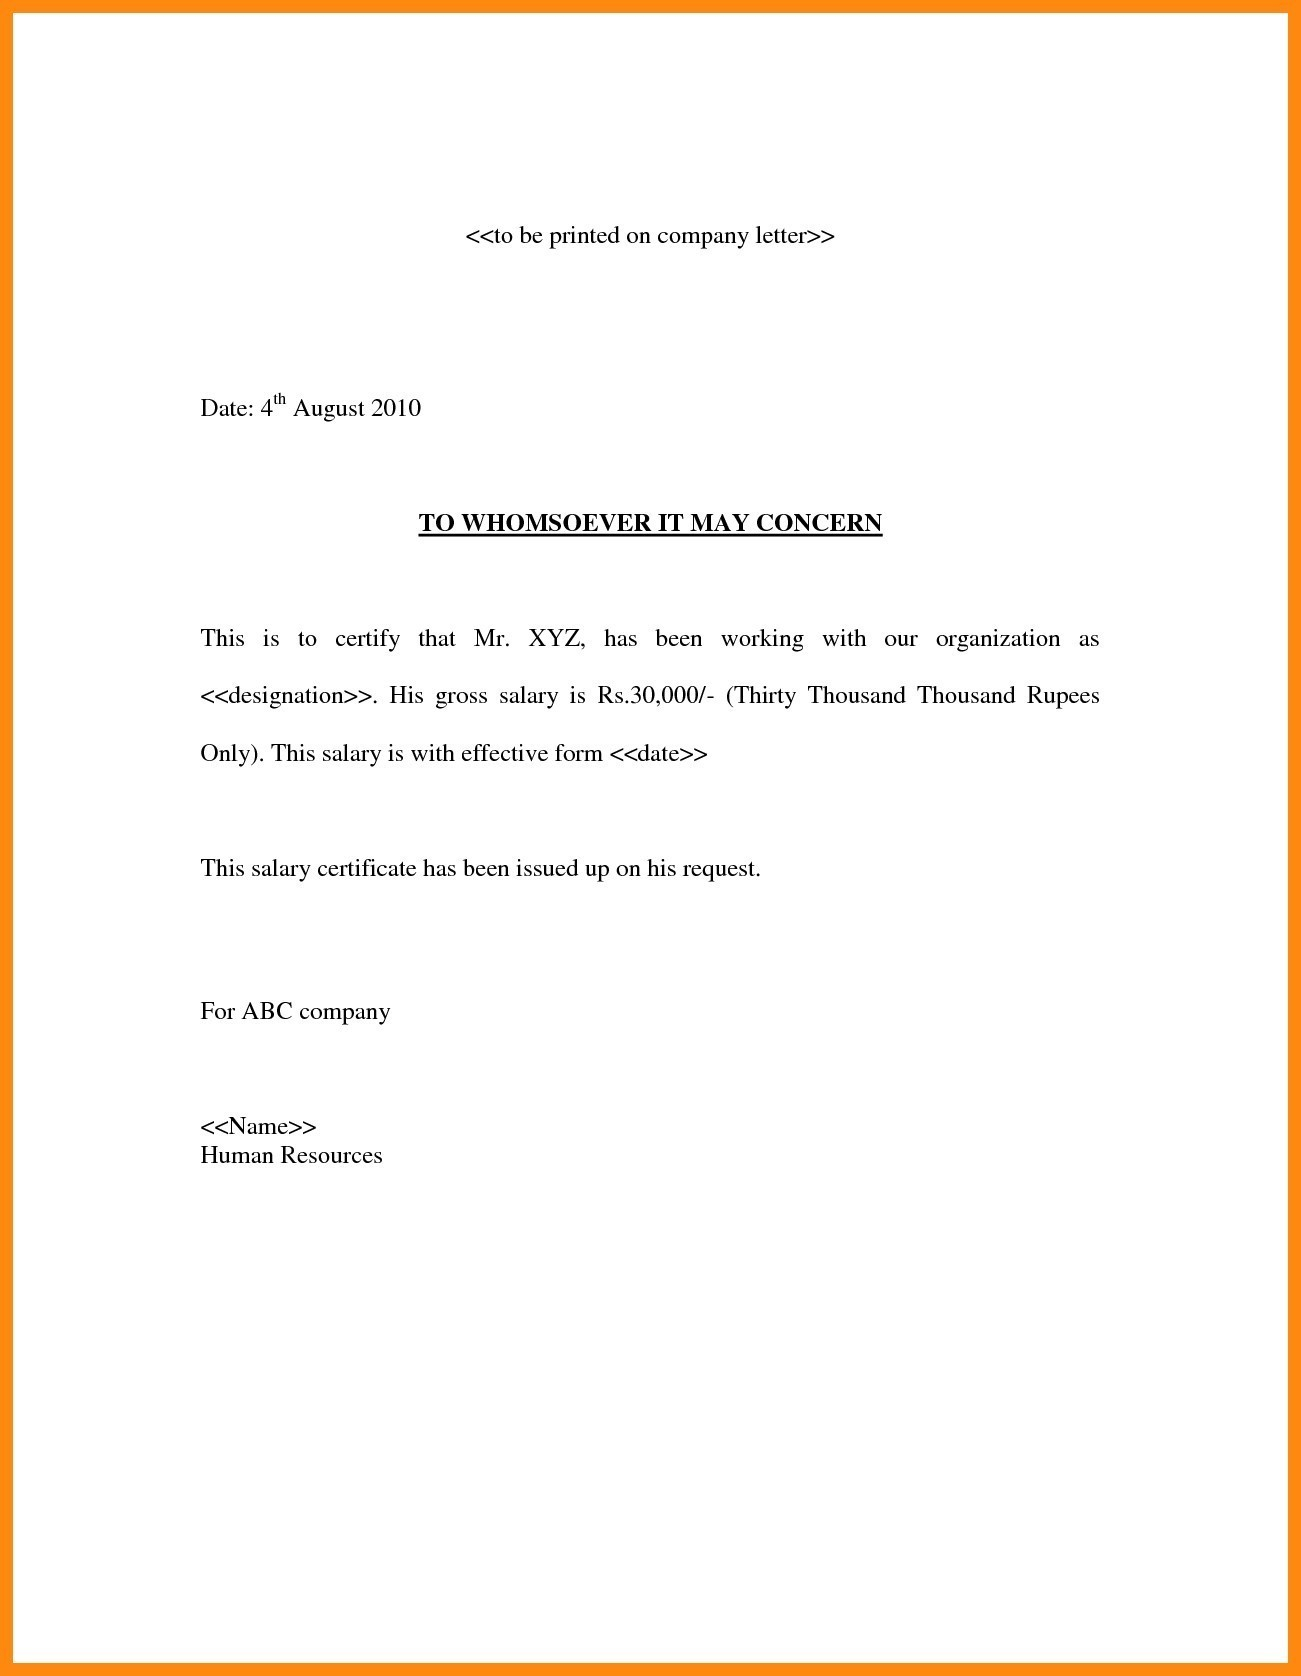 Salary Verification Letter Template - Employment Certificate format with Salary Best 3 Salary